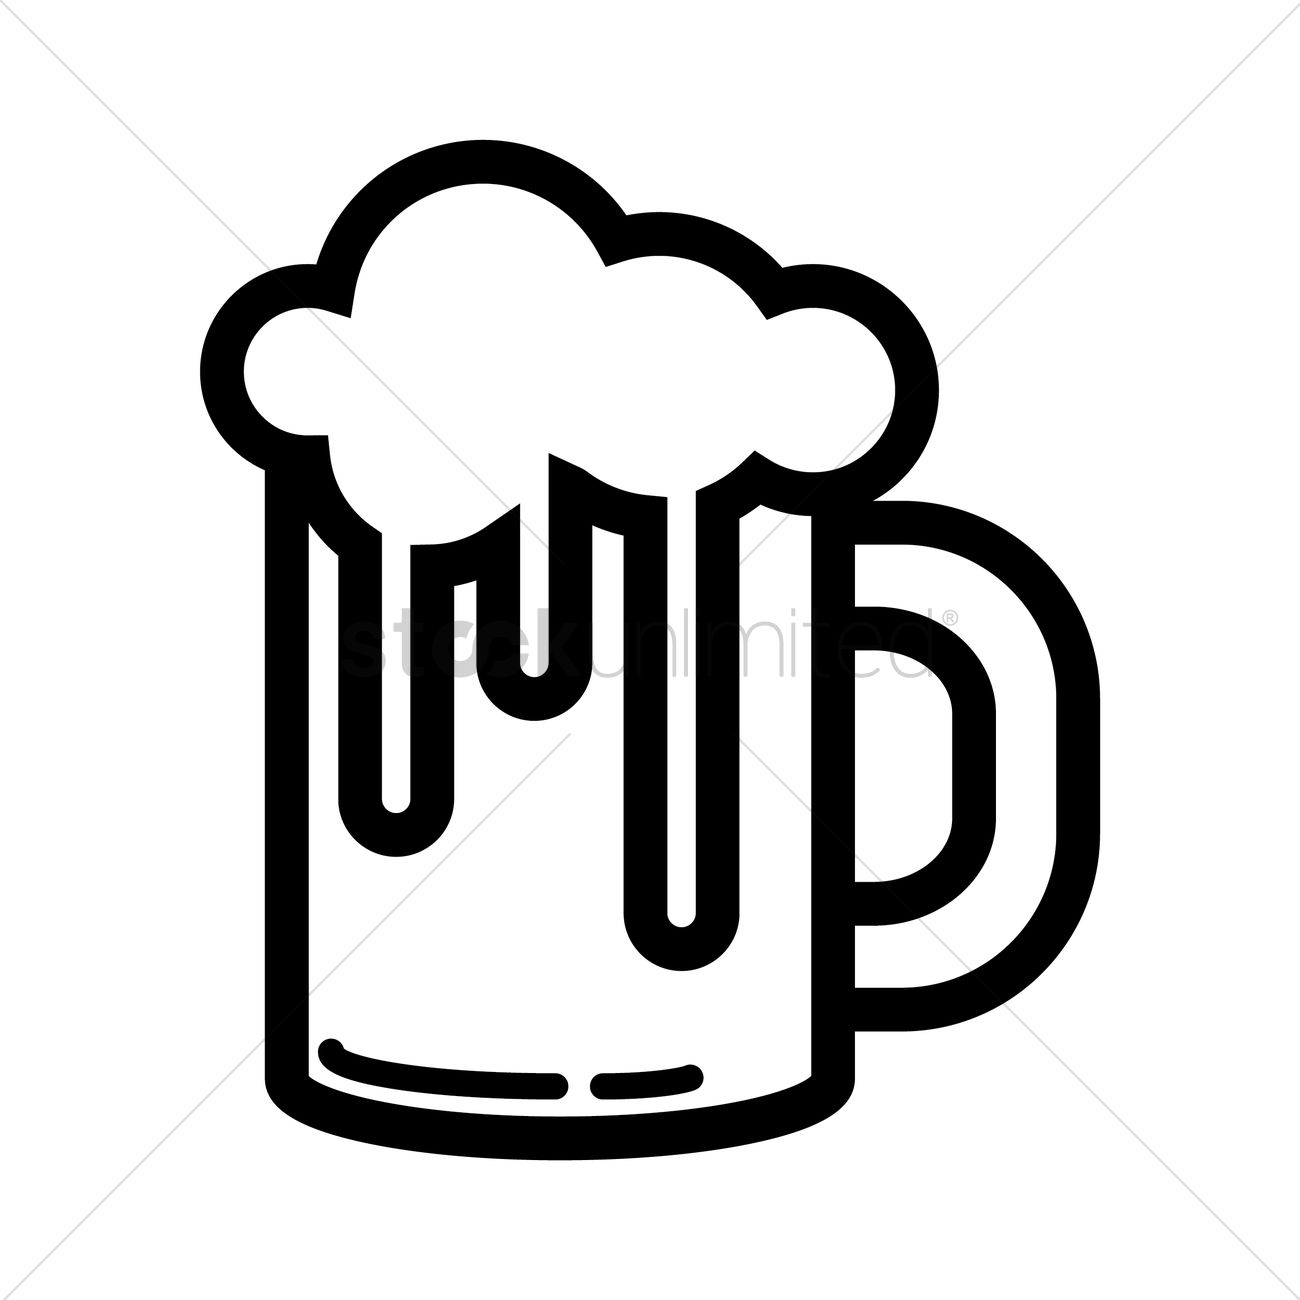 a glass of beer vector image 2017001 stockunlimited rh stockunlimited com beer vector mechanics solutions beer vector mechanics